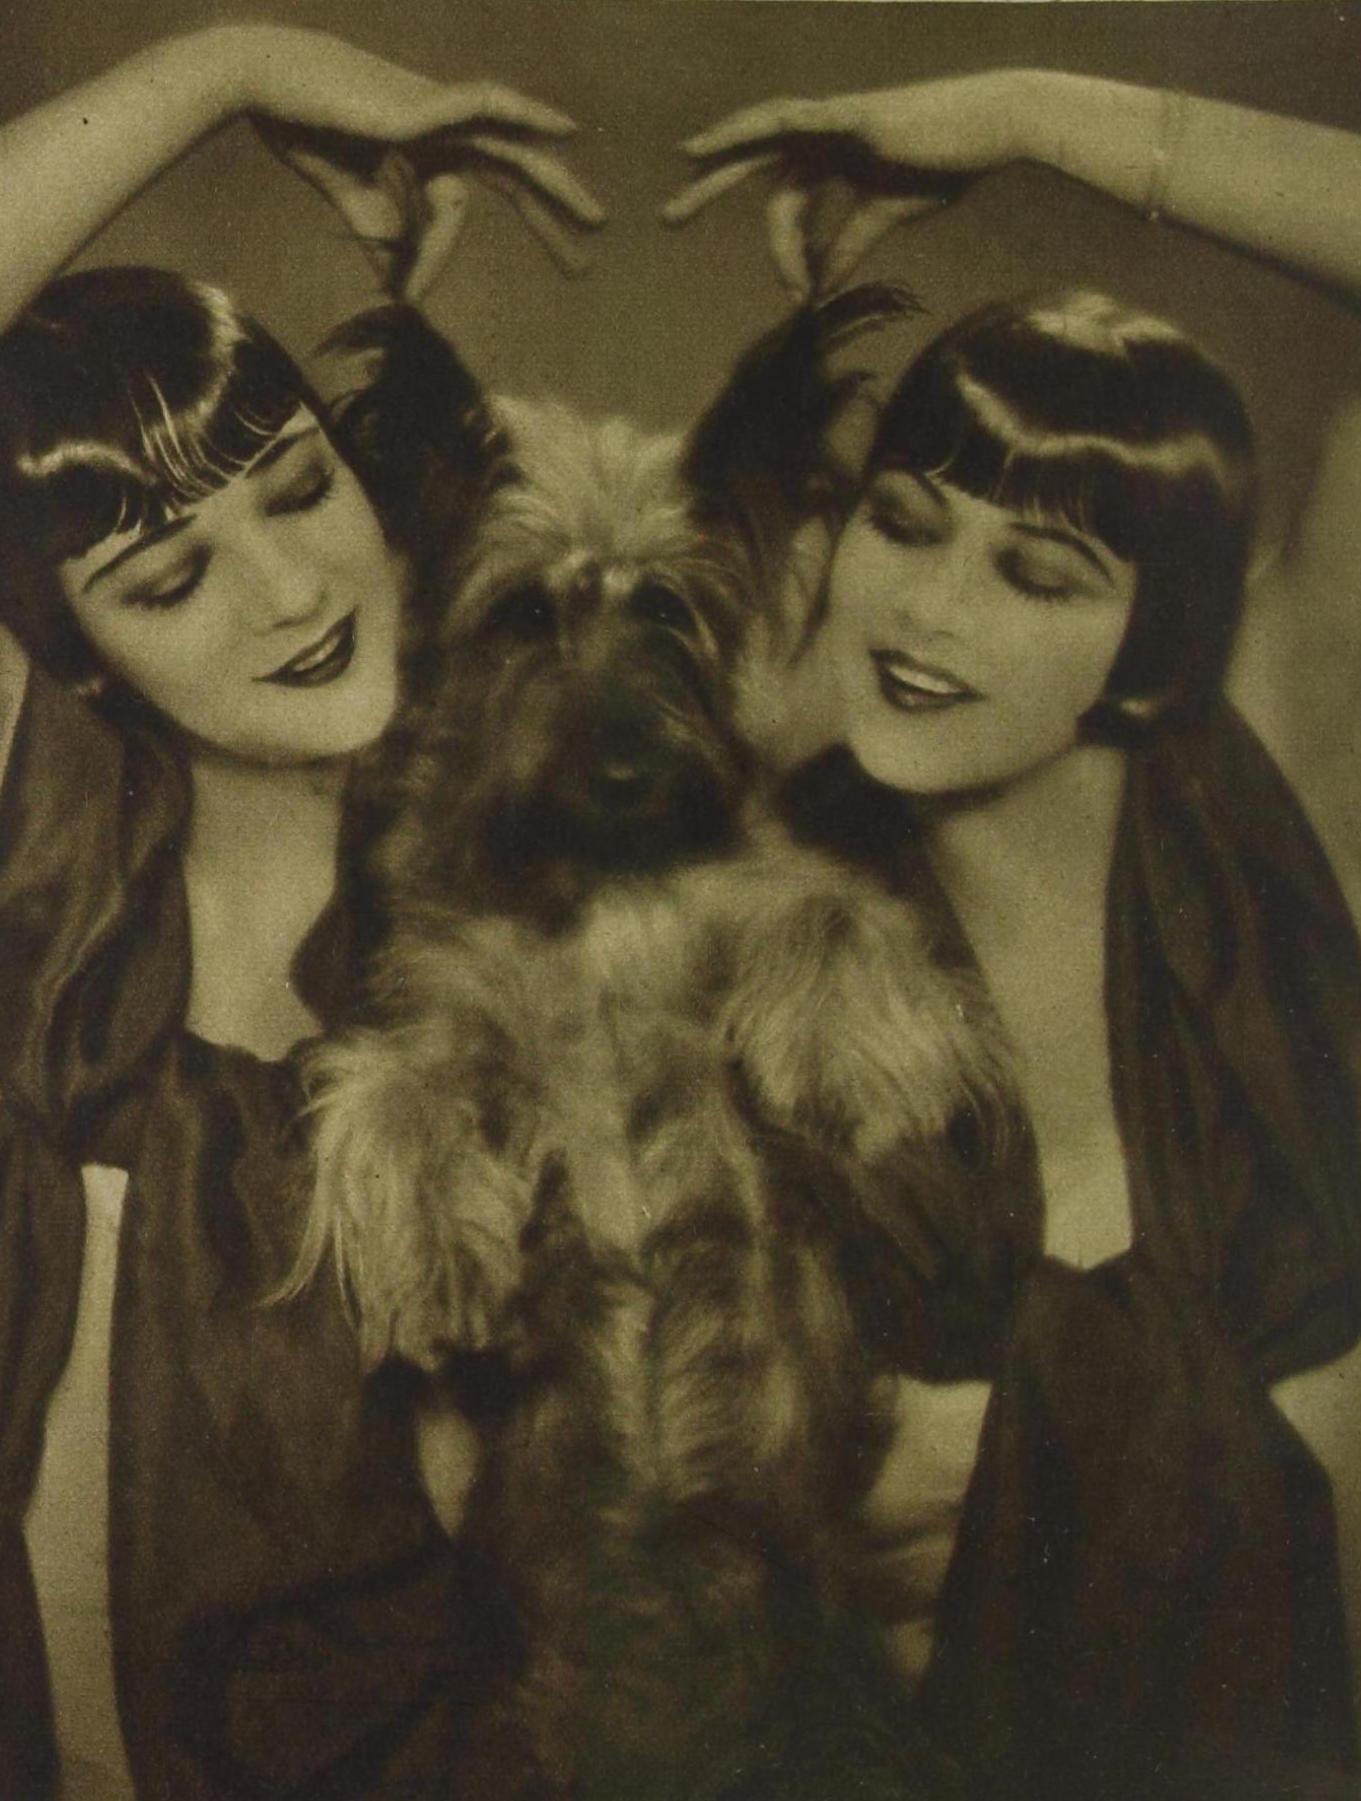 The sisters with one of their terrier dogs (either Sweetie or Goodie), photographed by Manassé, c.1928